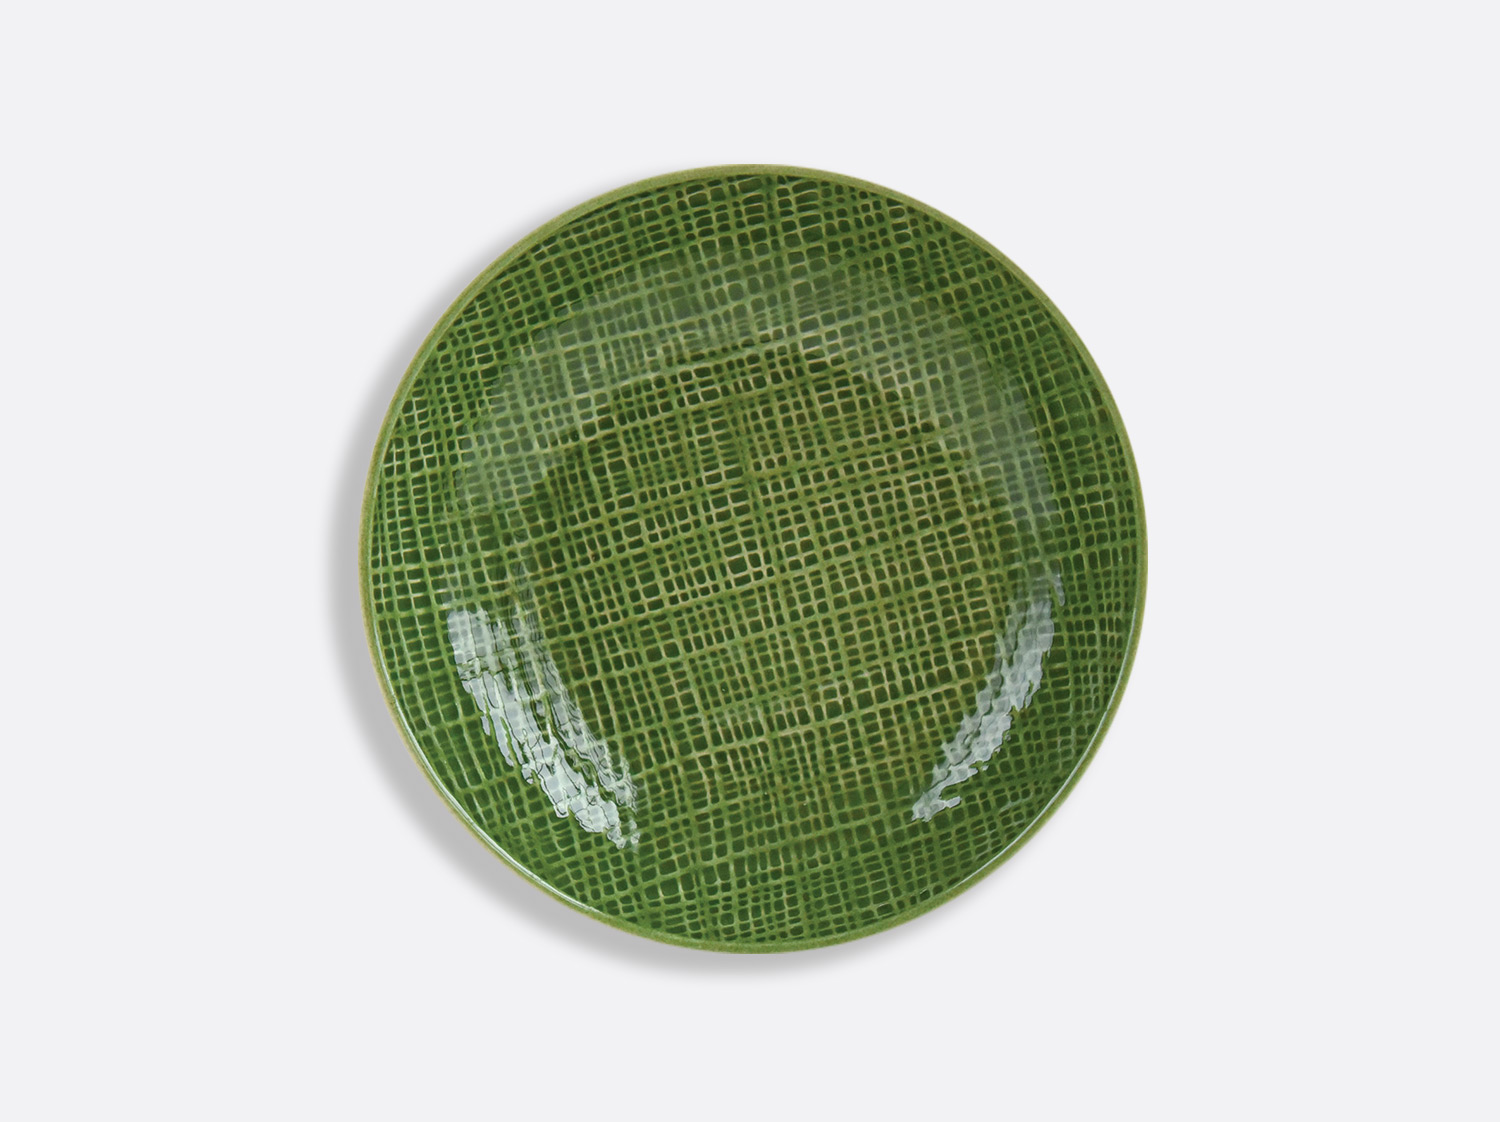 China Vert Chartreux coupe soup 19.2 cm of the collection ORGANZA VERT CHARTREUX | Bernardaud